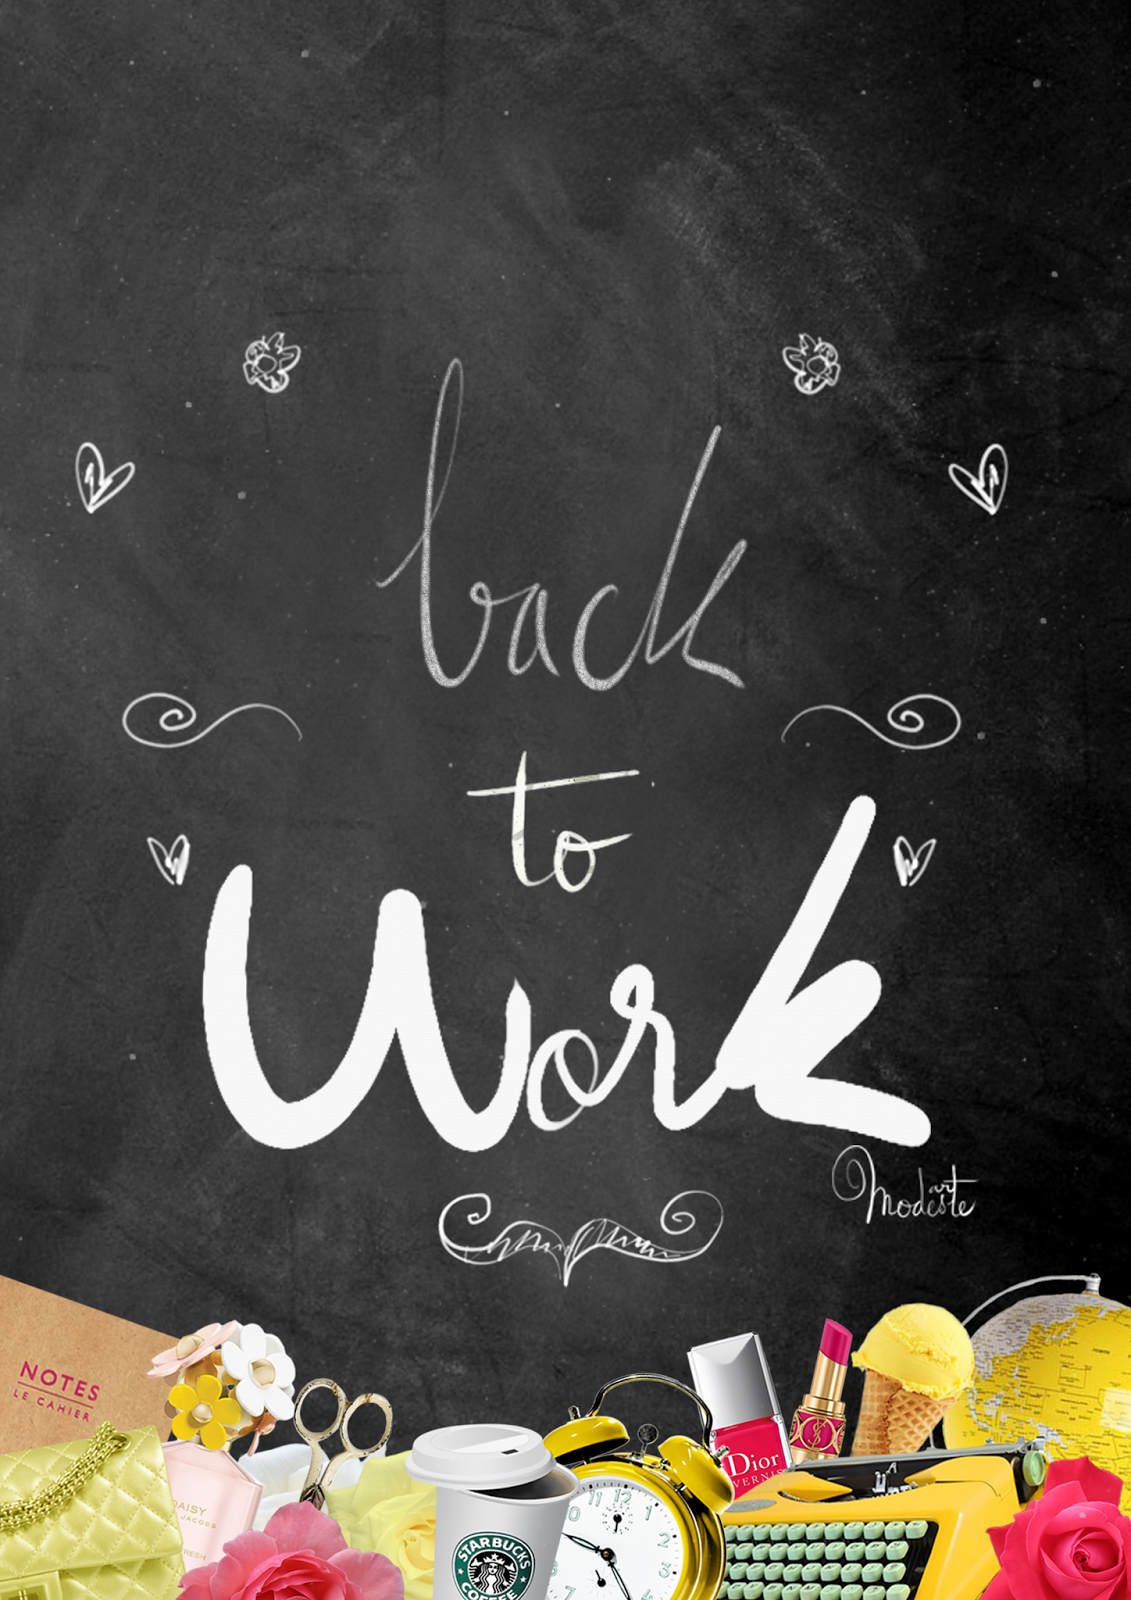 Free Download Wallpapers Back To School Back To School